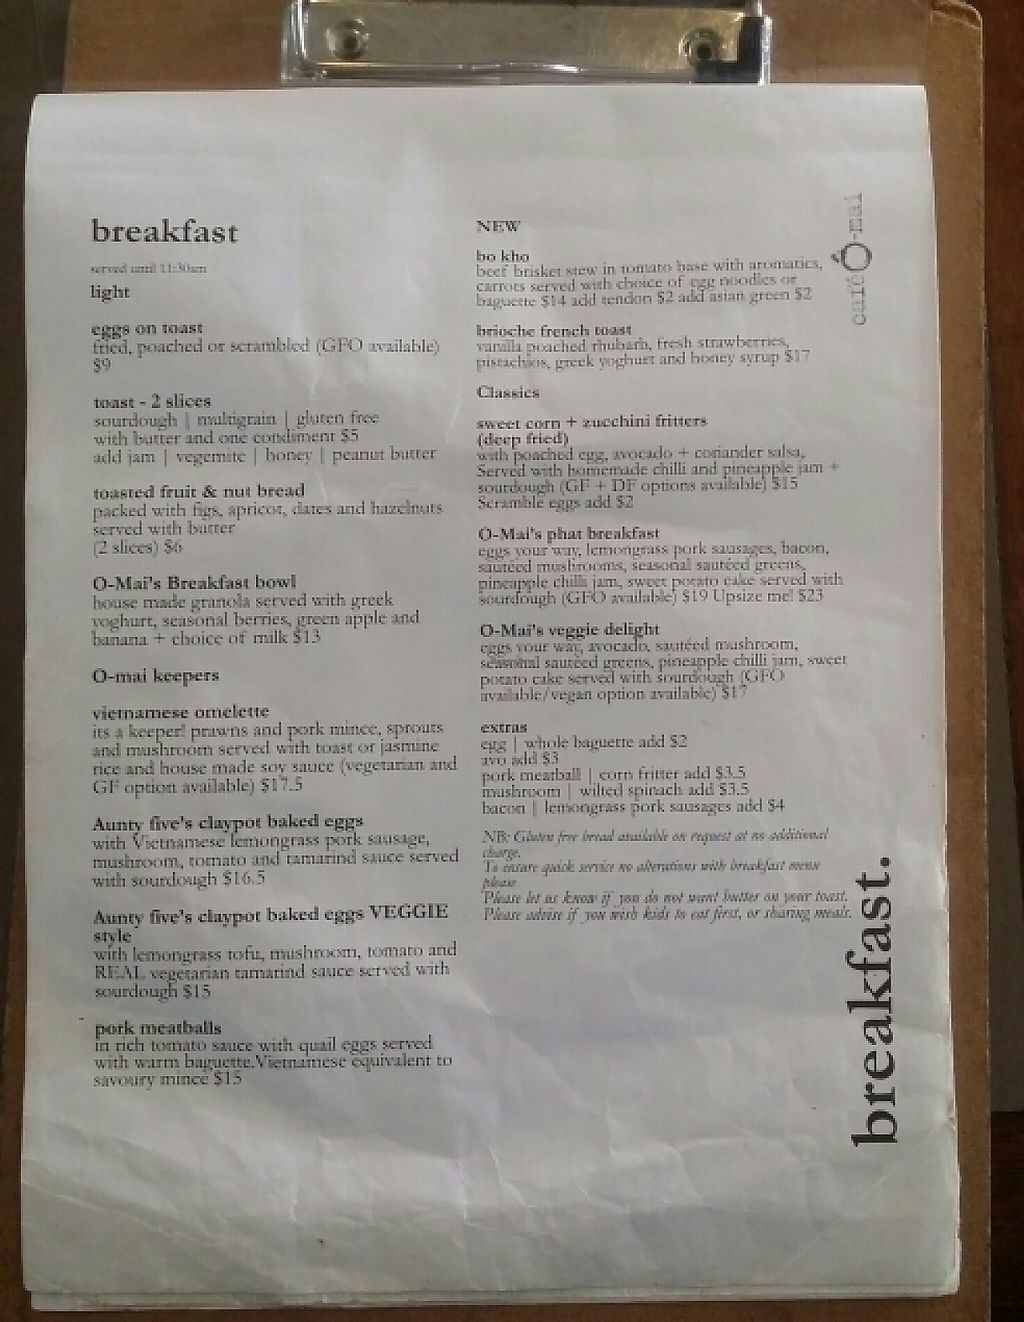 """Photo of Cafe O Mai  by <a href=""""/members/profile/Mike%20Munsie"""">Mike Munsie</a> <br/>breakfast menu 1 <br/> May 23, 2017  - <a href='/contact/abuse/image/83223/261587'>Report</a>"""